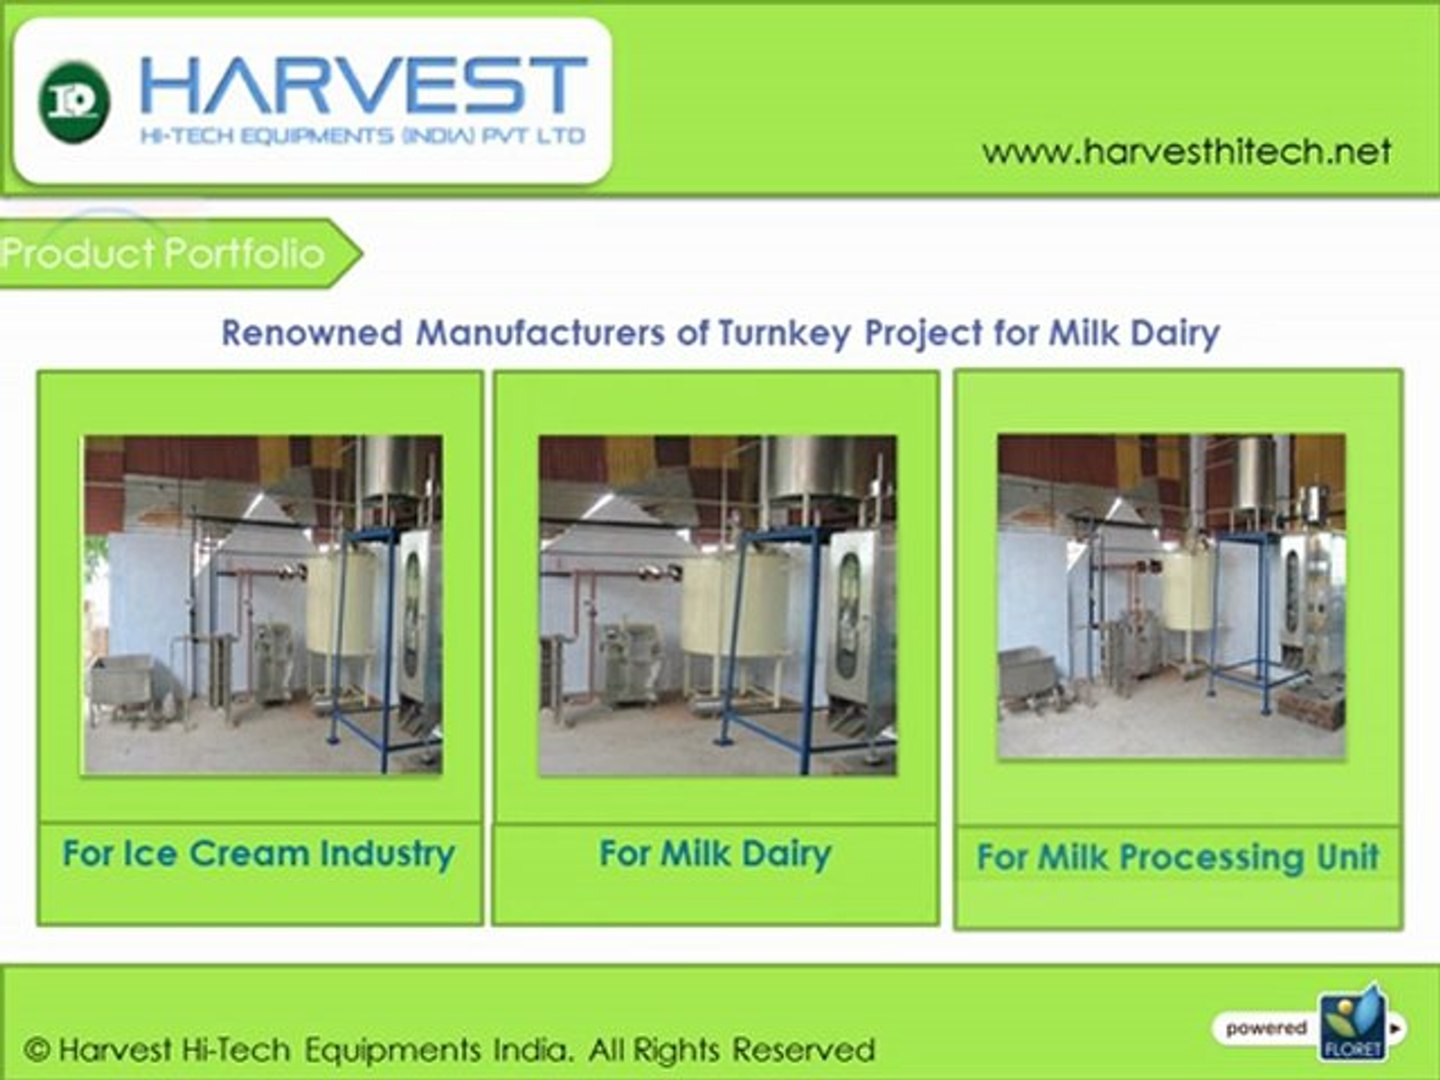 Harvest manufacturers products